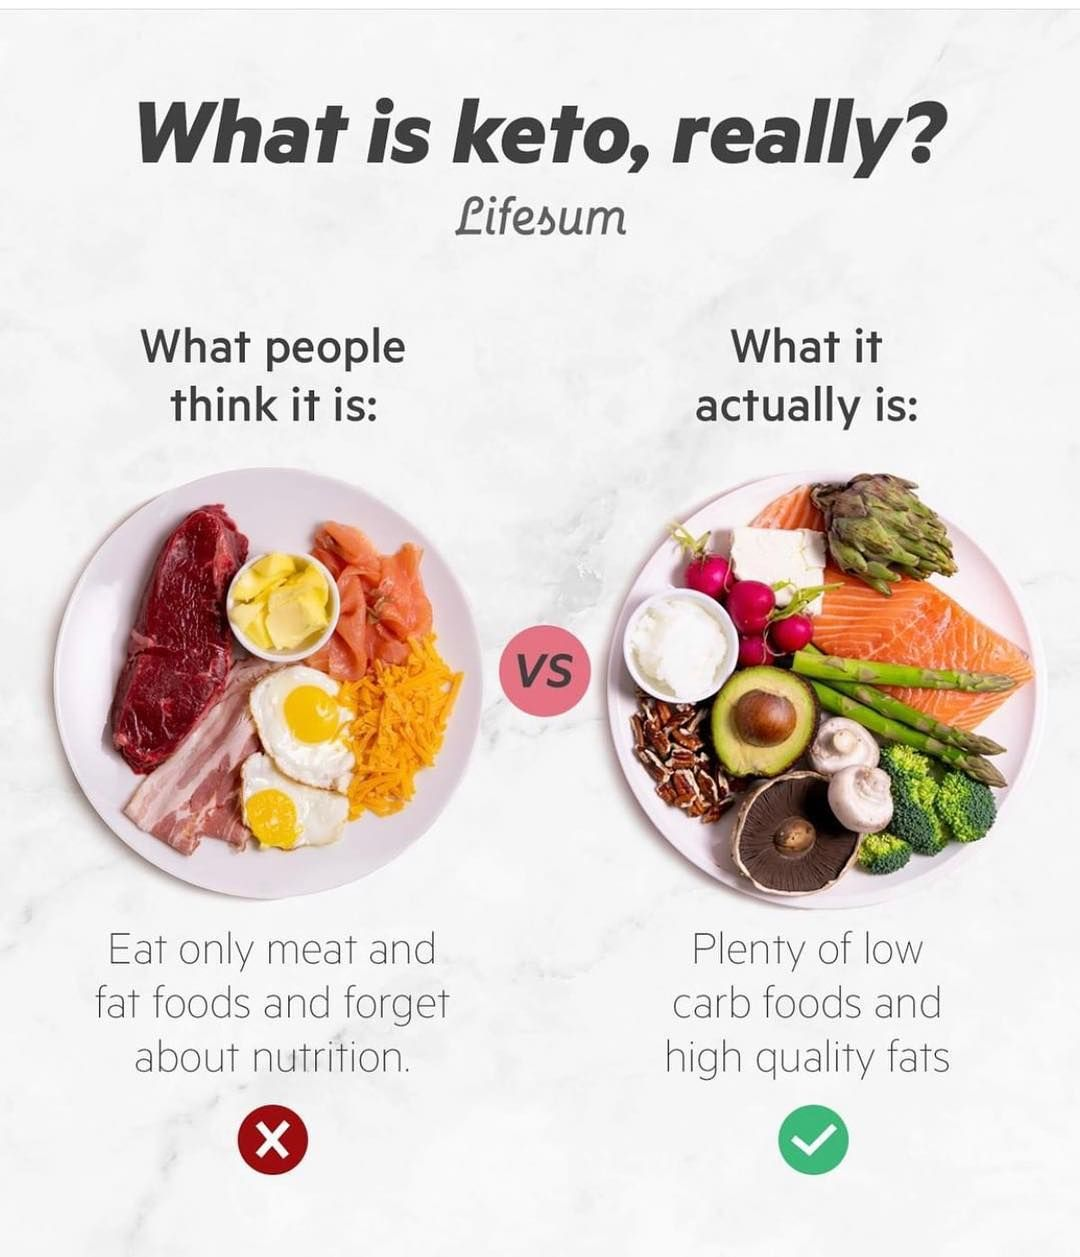 is a keto diet unhealthy